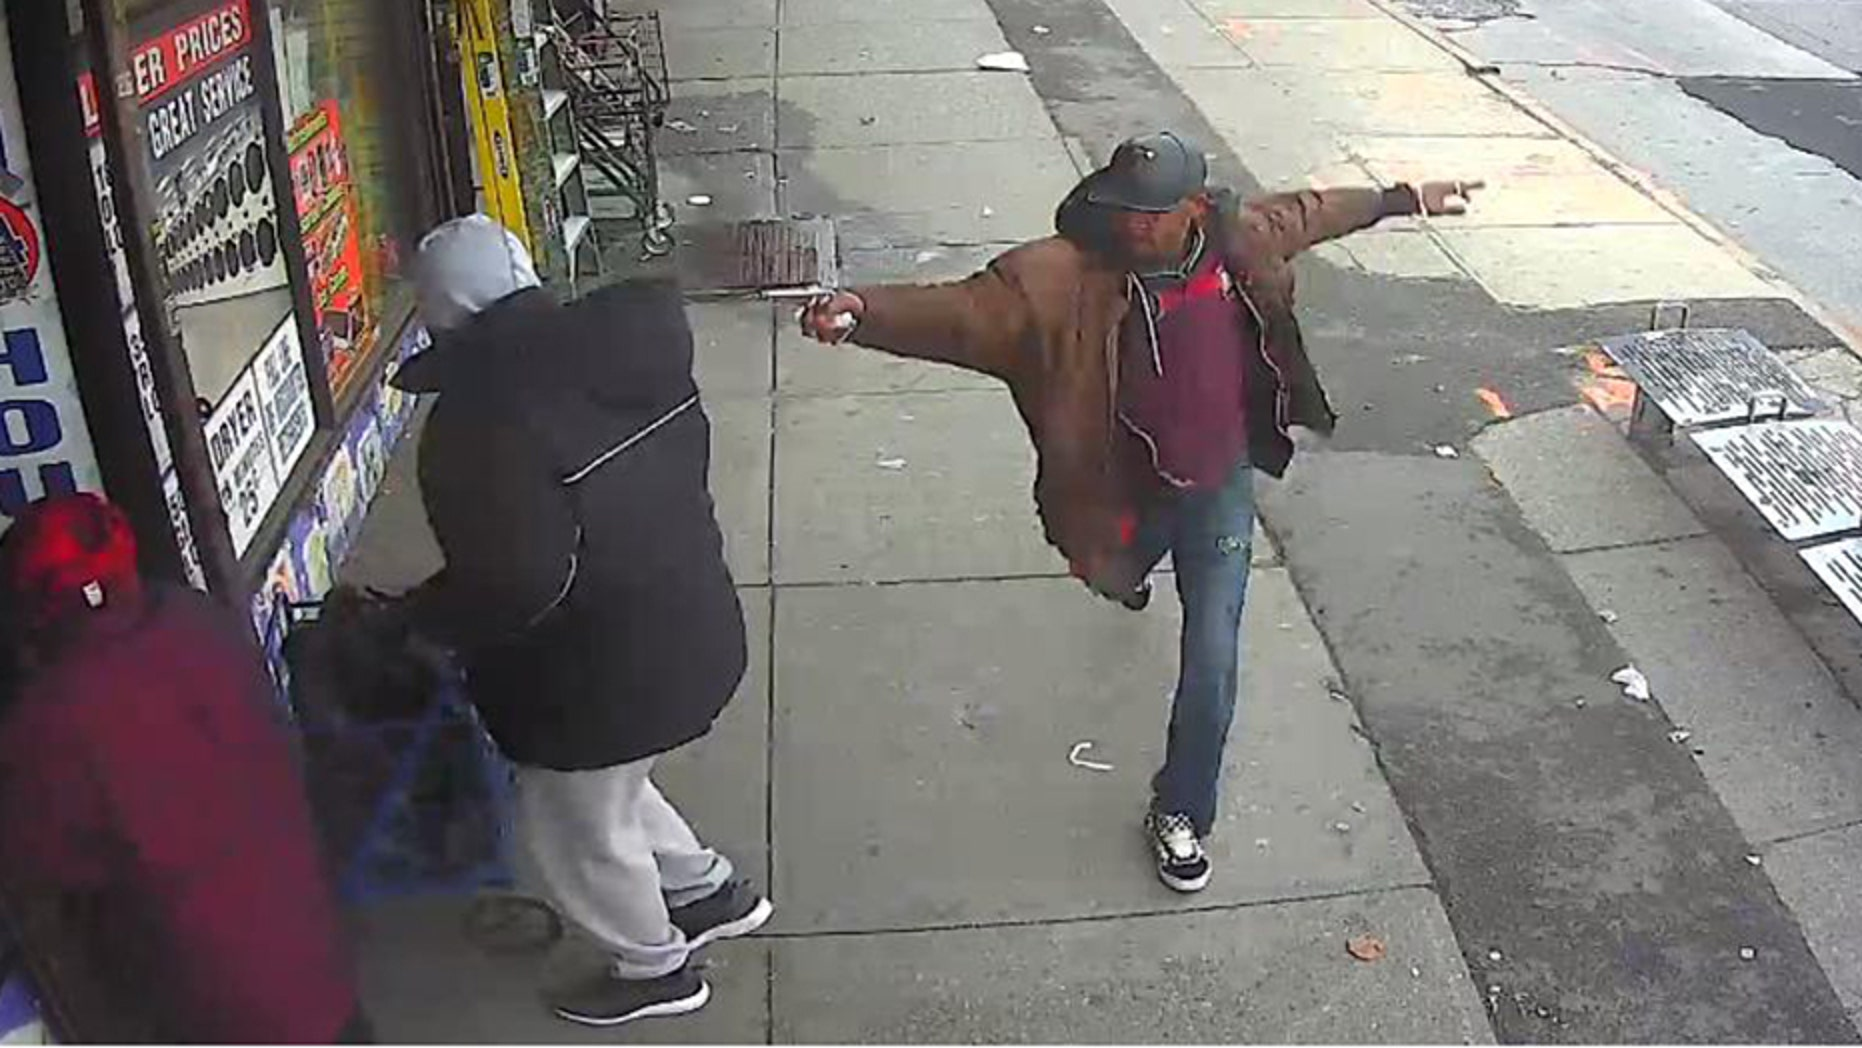 Surveillance video footage of Saheed Vassell showed him pointing what officers believed to be a gun at people in Brooklyn, N.Y.